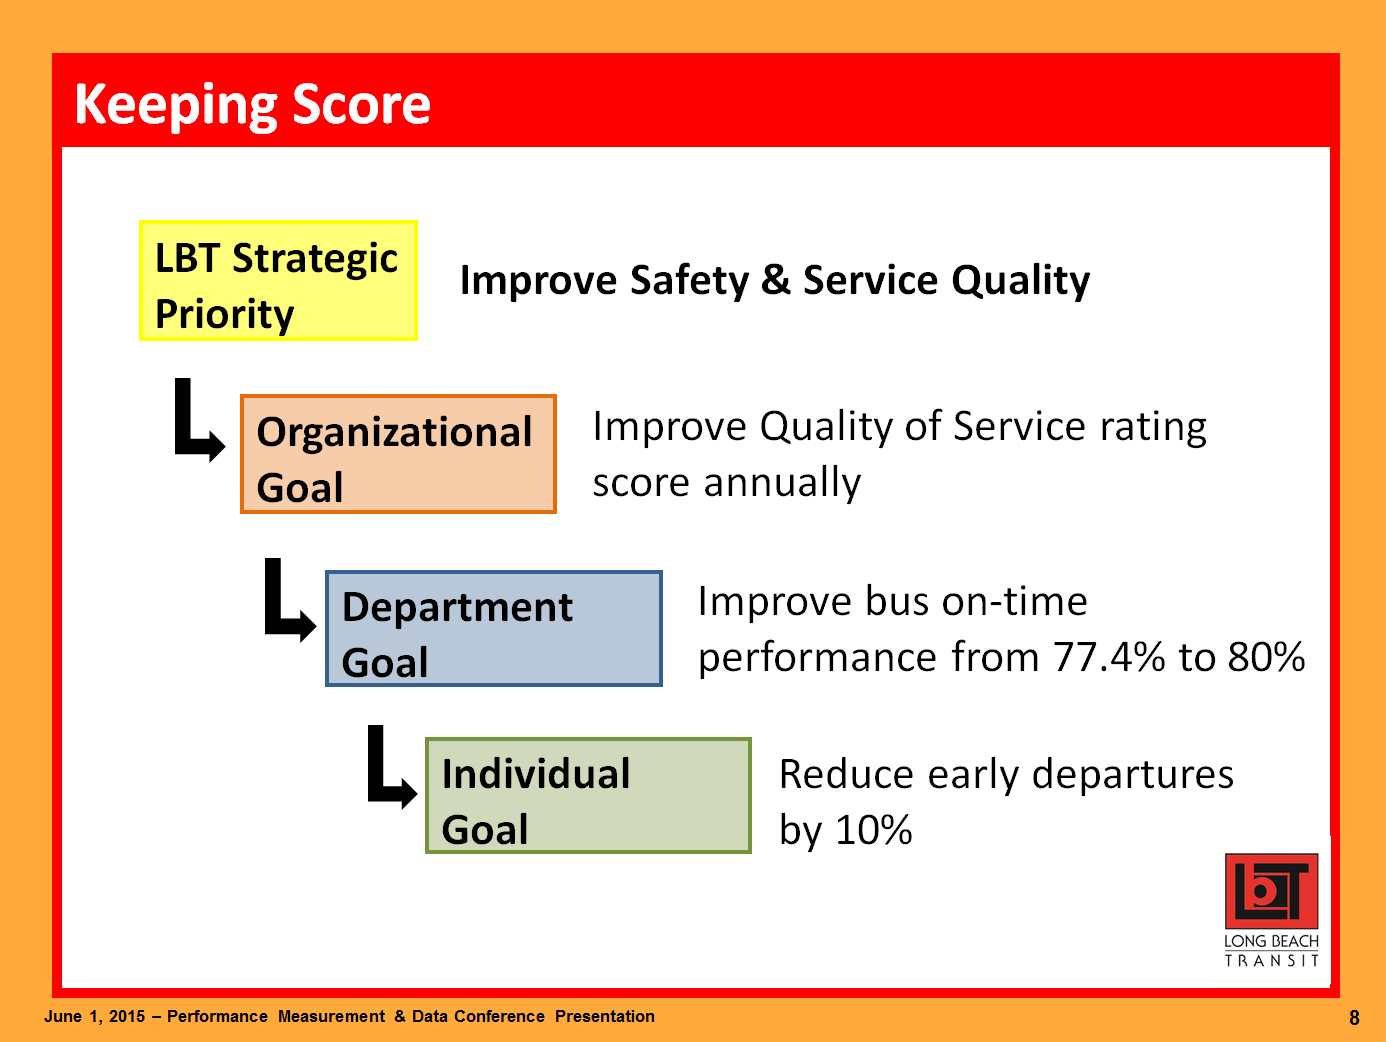 Keeping Score. LBT Strategic Priority: improve safety and service quality. Organizational goal: improve quality of service rating score annually. Department goal: improve bus on-time performance from 77.4% to 80%. Individual goal: reduce early departures by 10%.